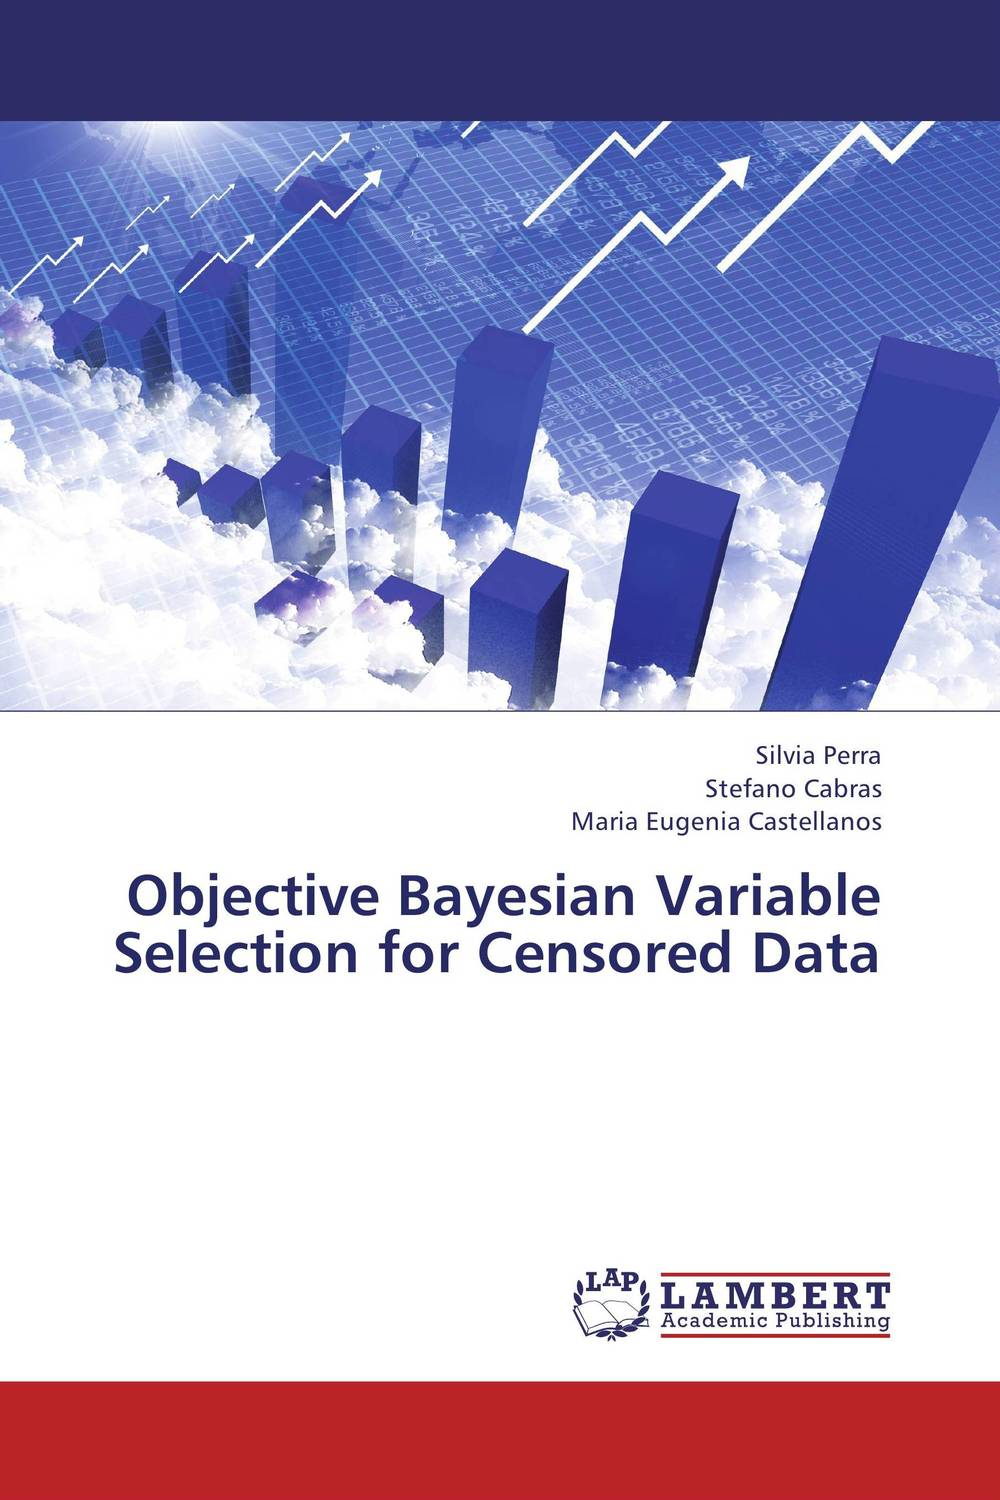 Objective Bayesian Variable Selection for Censored Data